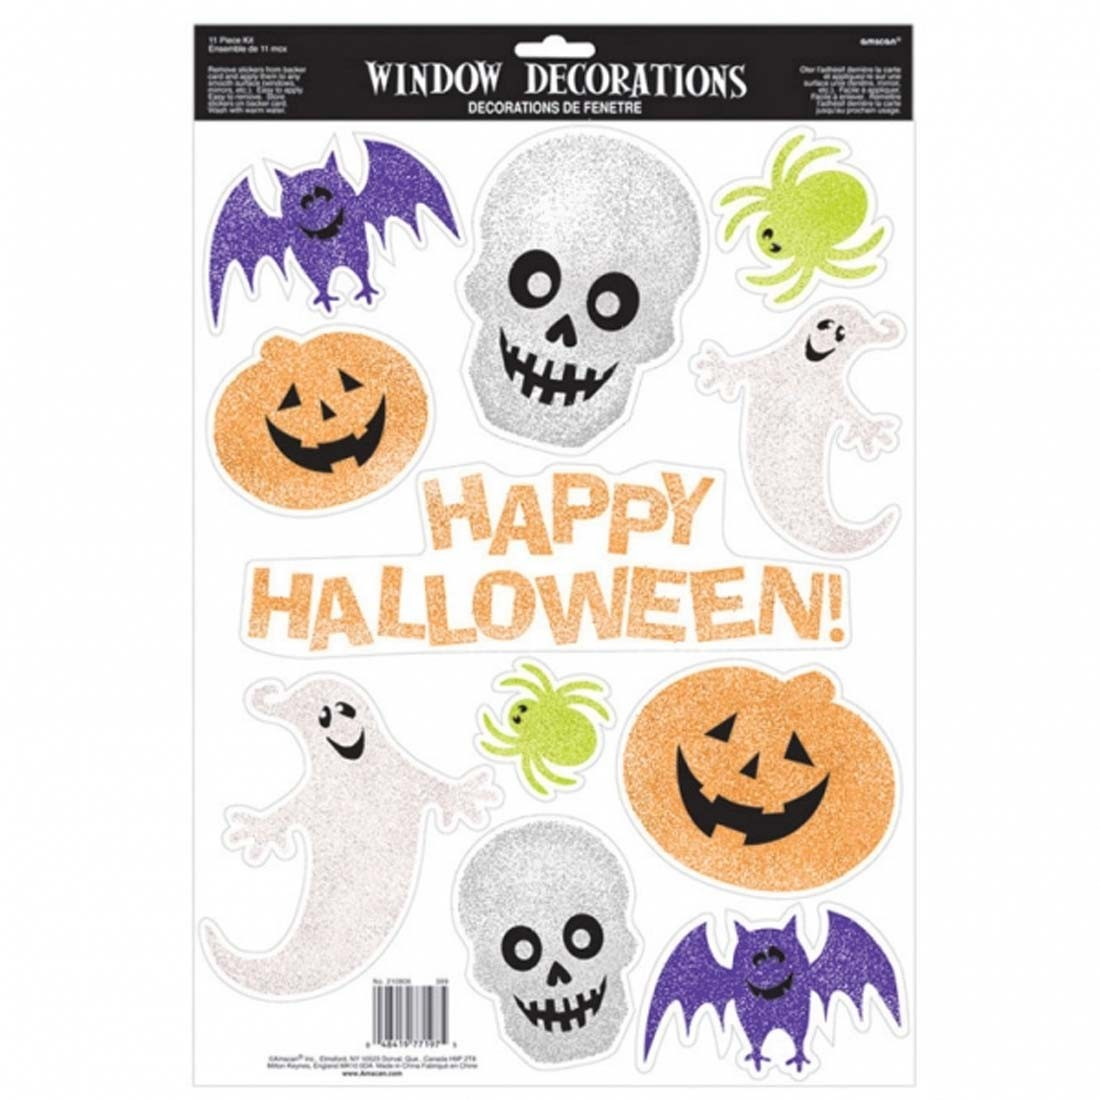 Happy halloween fensterdeko 45 7 x 30 5 cm kinder - Halloween fensterdeko ...